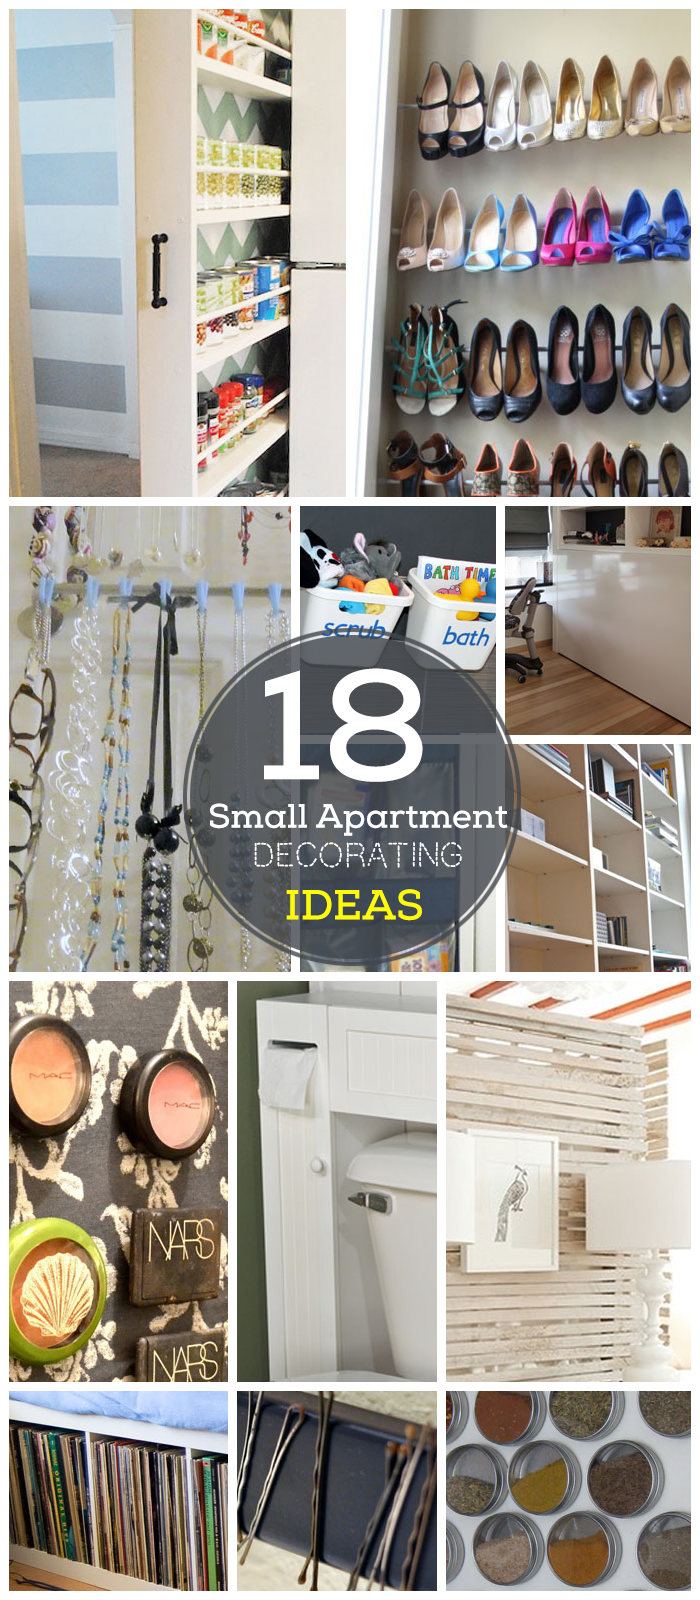 Apartment Decorating Diy 25 small apartment decorating ideas on a budget | apartments